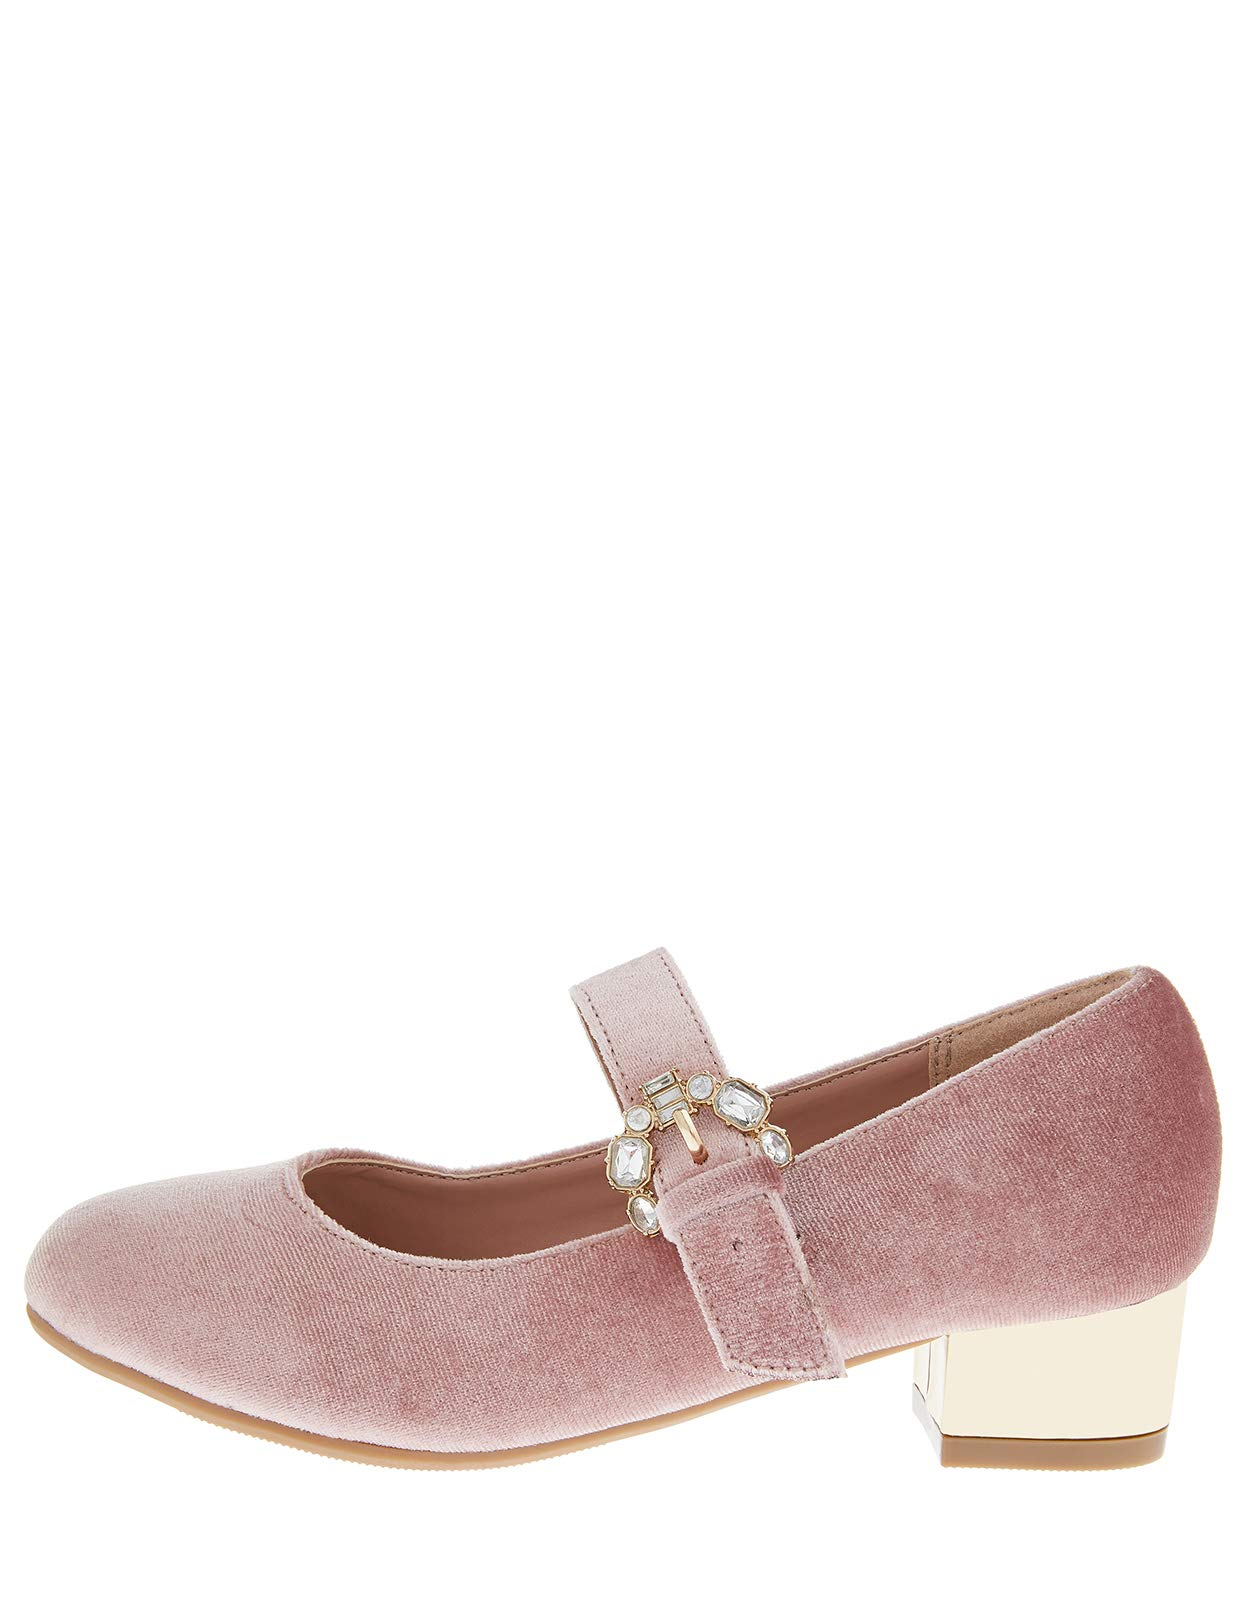 Accessorize Briony Buckle Velvet Charleston Shoes - Girls - US 11 Shoe